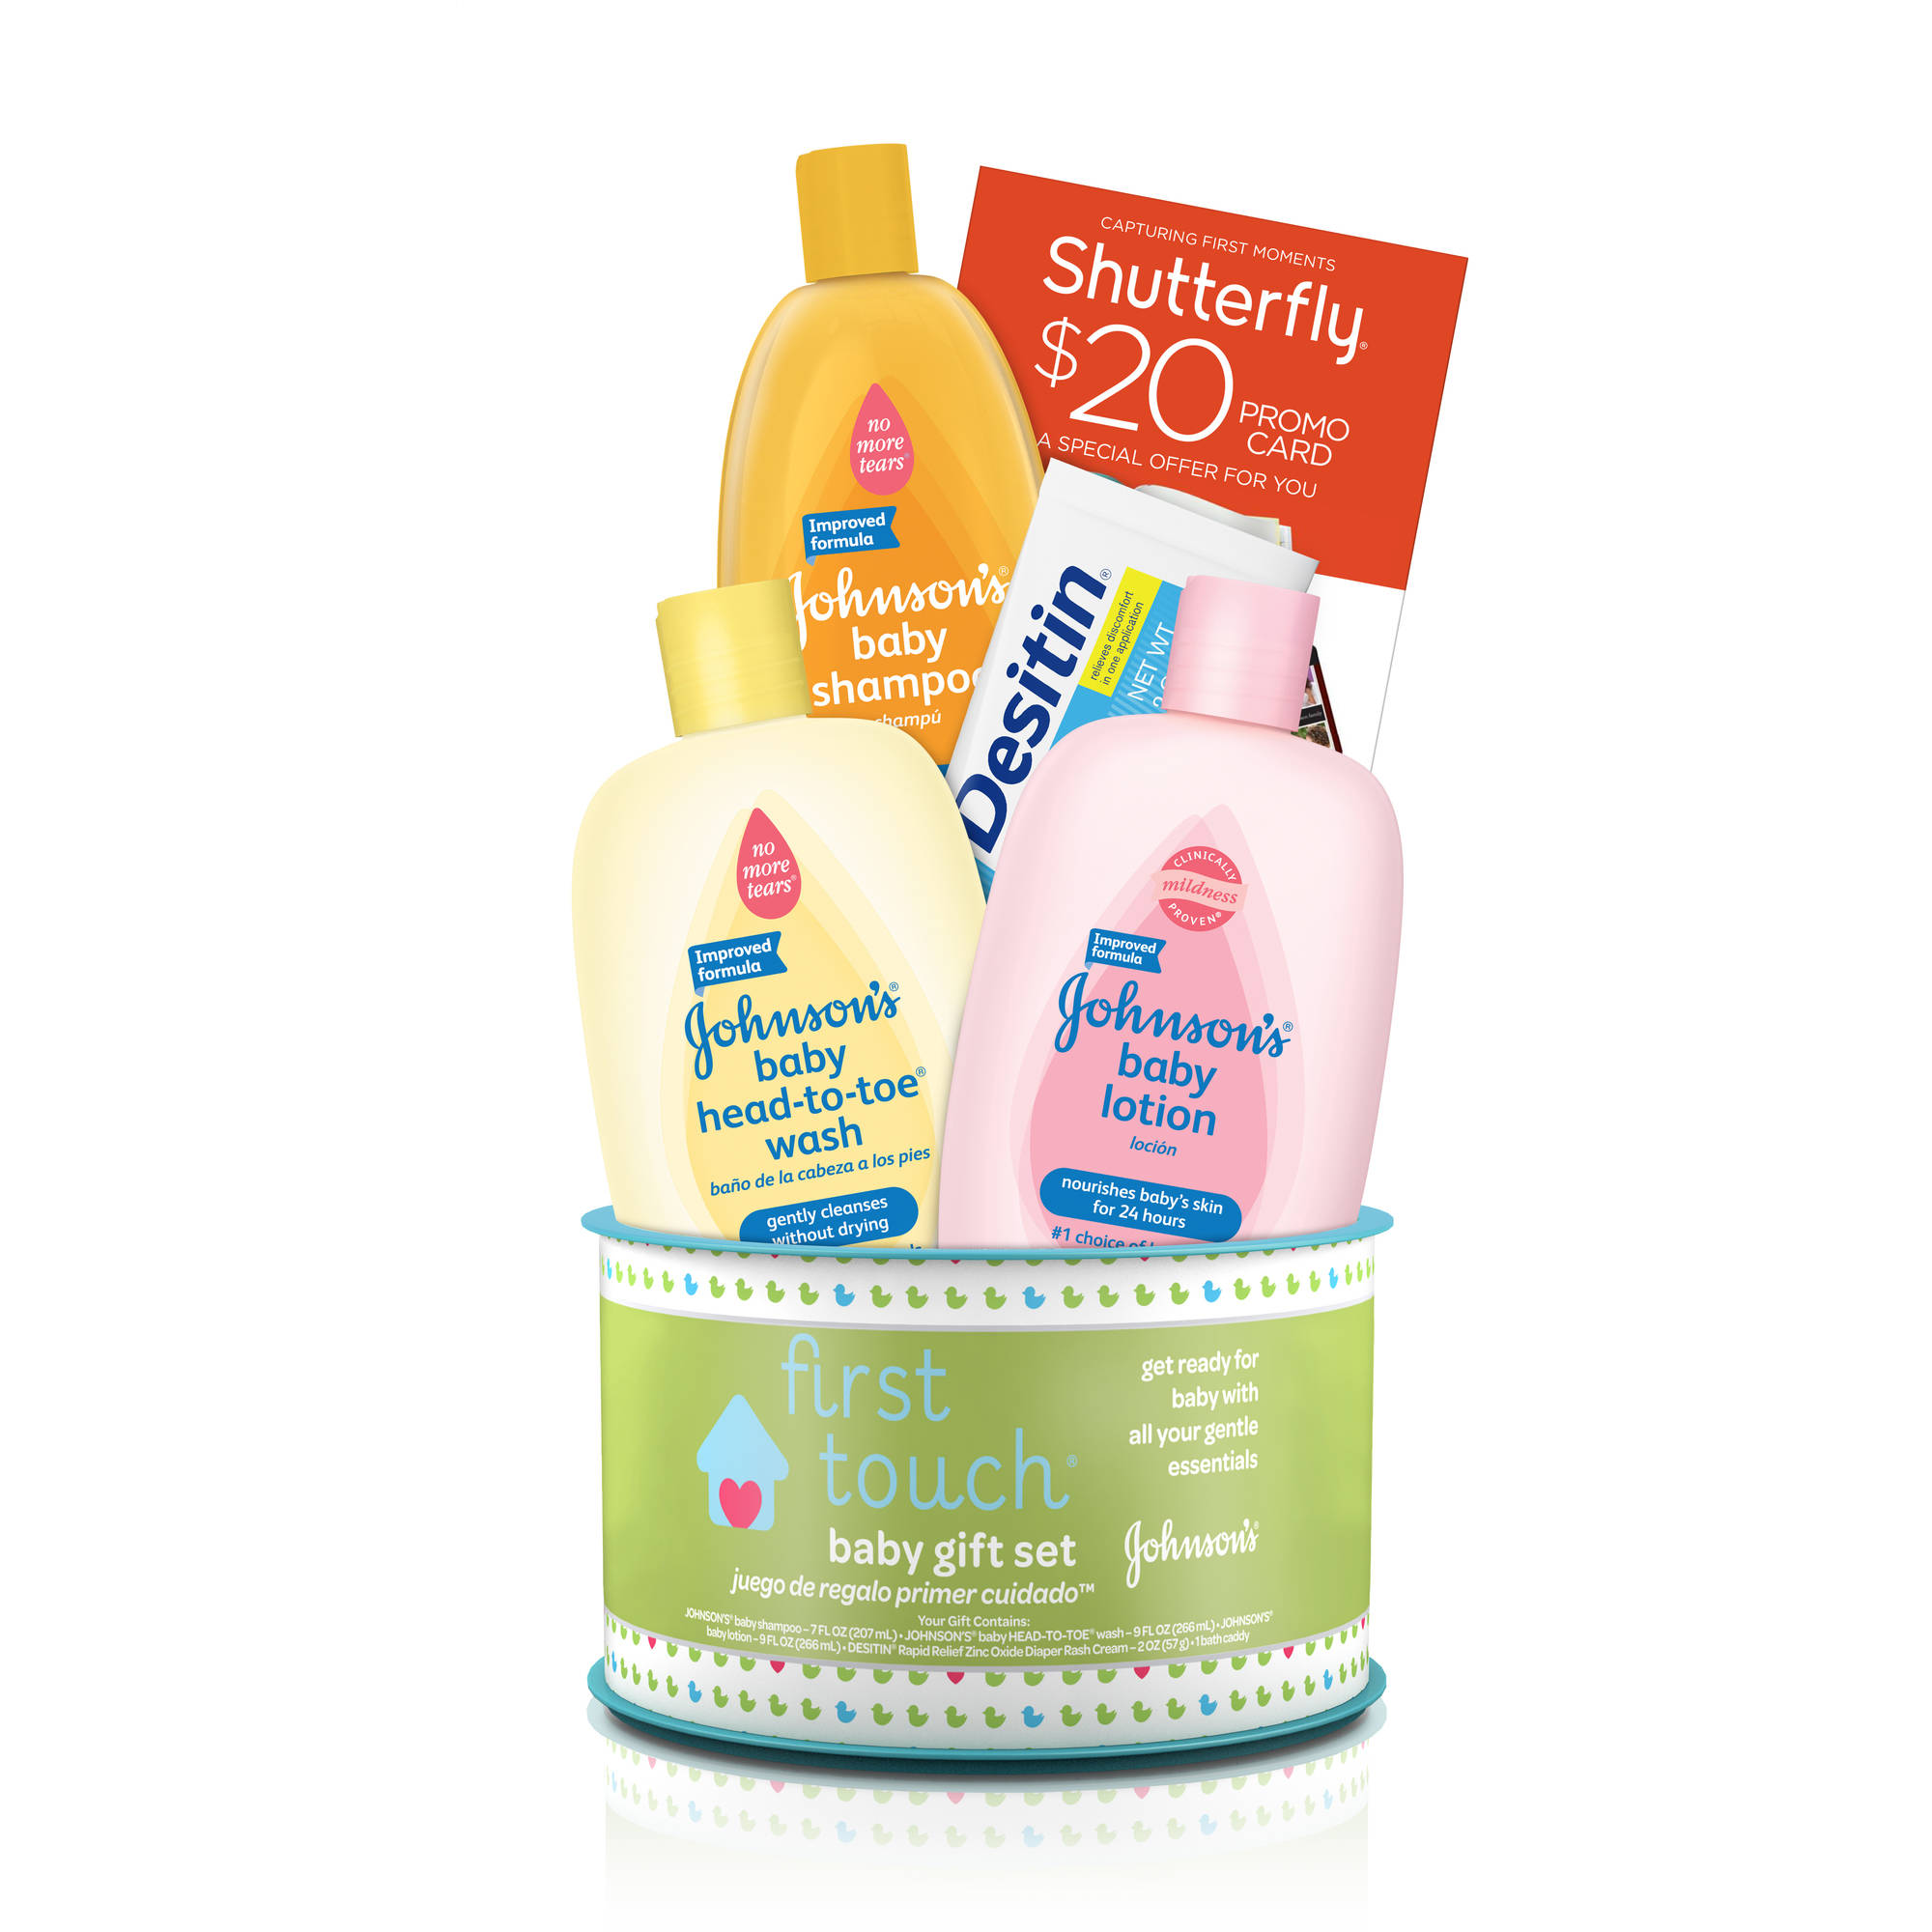 Johnson's first touch baby gift set, 4 Items